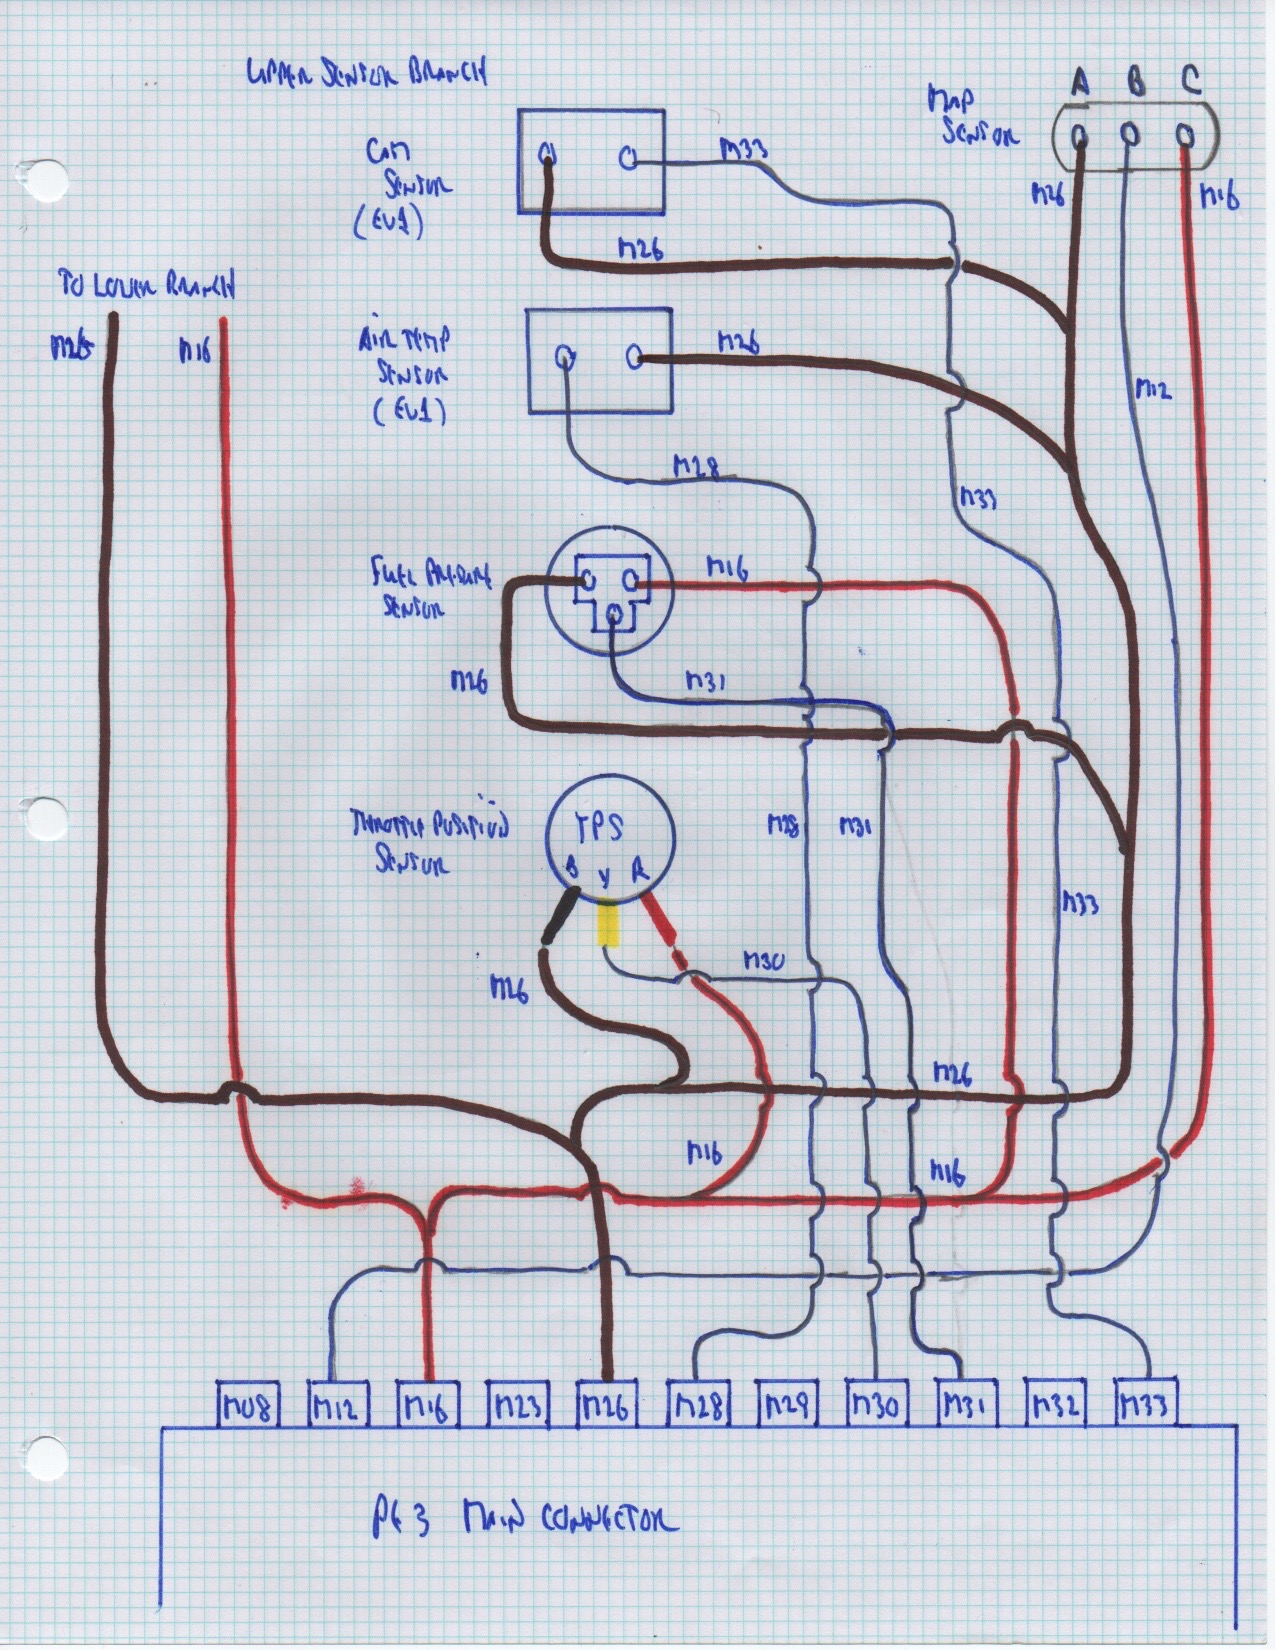 small resolution of upper sensor branch wiring diagram junk yard zetec i bundled the wiring for the sensors that